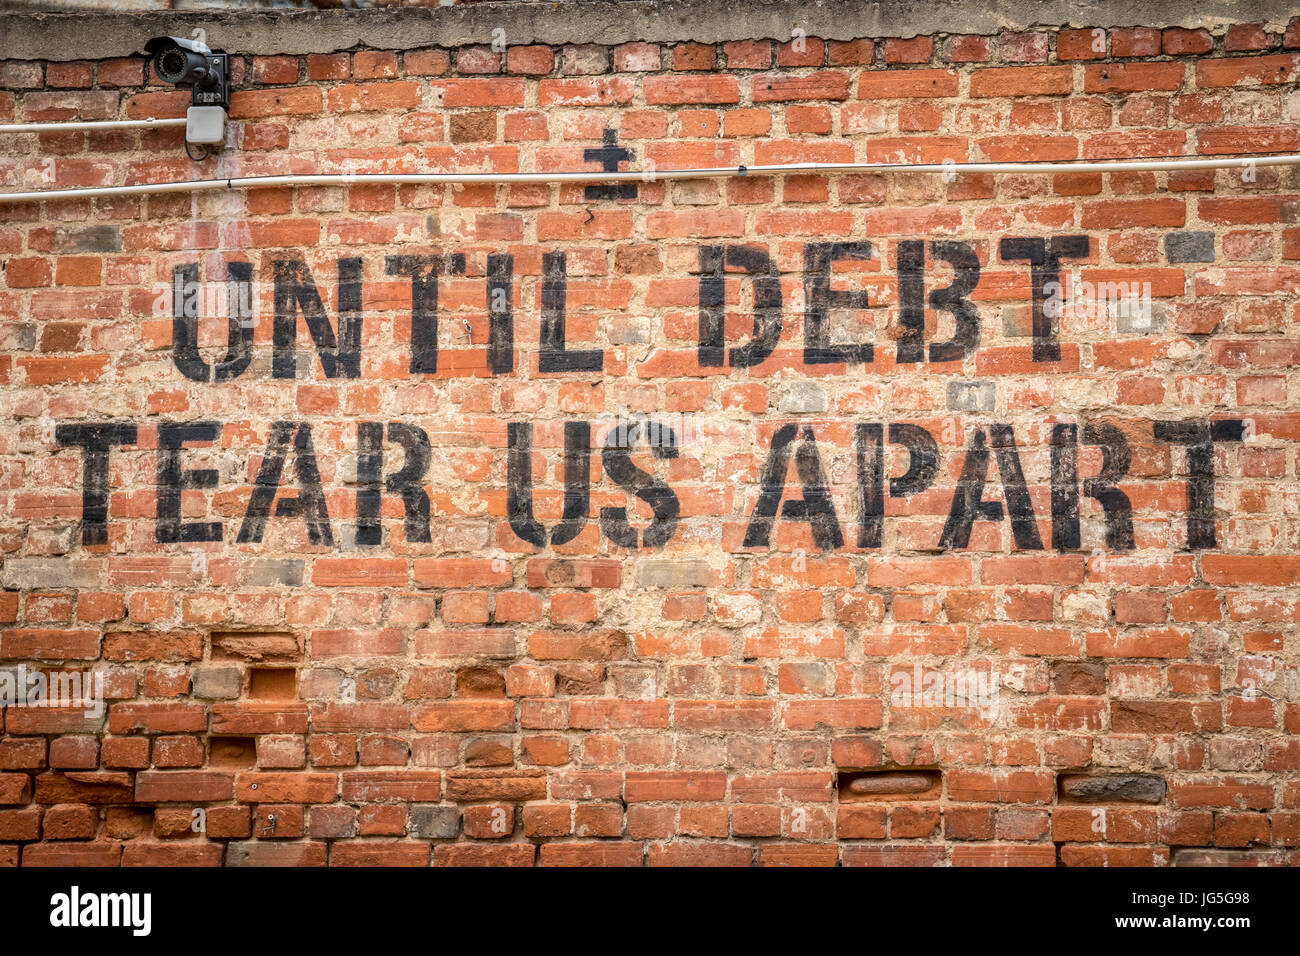 LISBON, PORTUGAL - June 2017 - Until debt tear us apart message on a wall in the LX factory area of Lisbon, Portugal - Stock Image